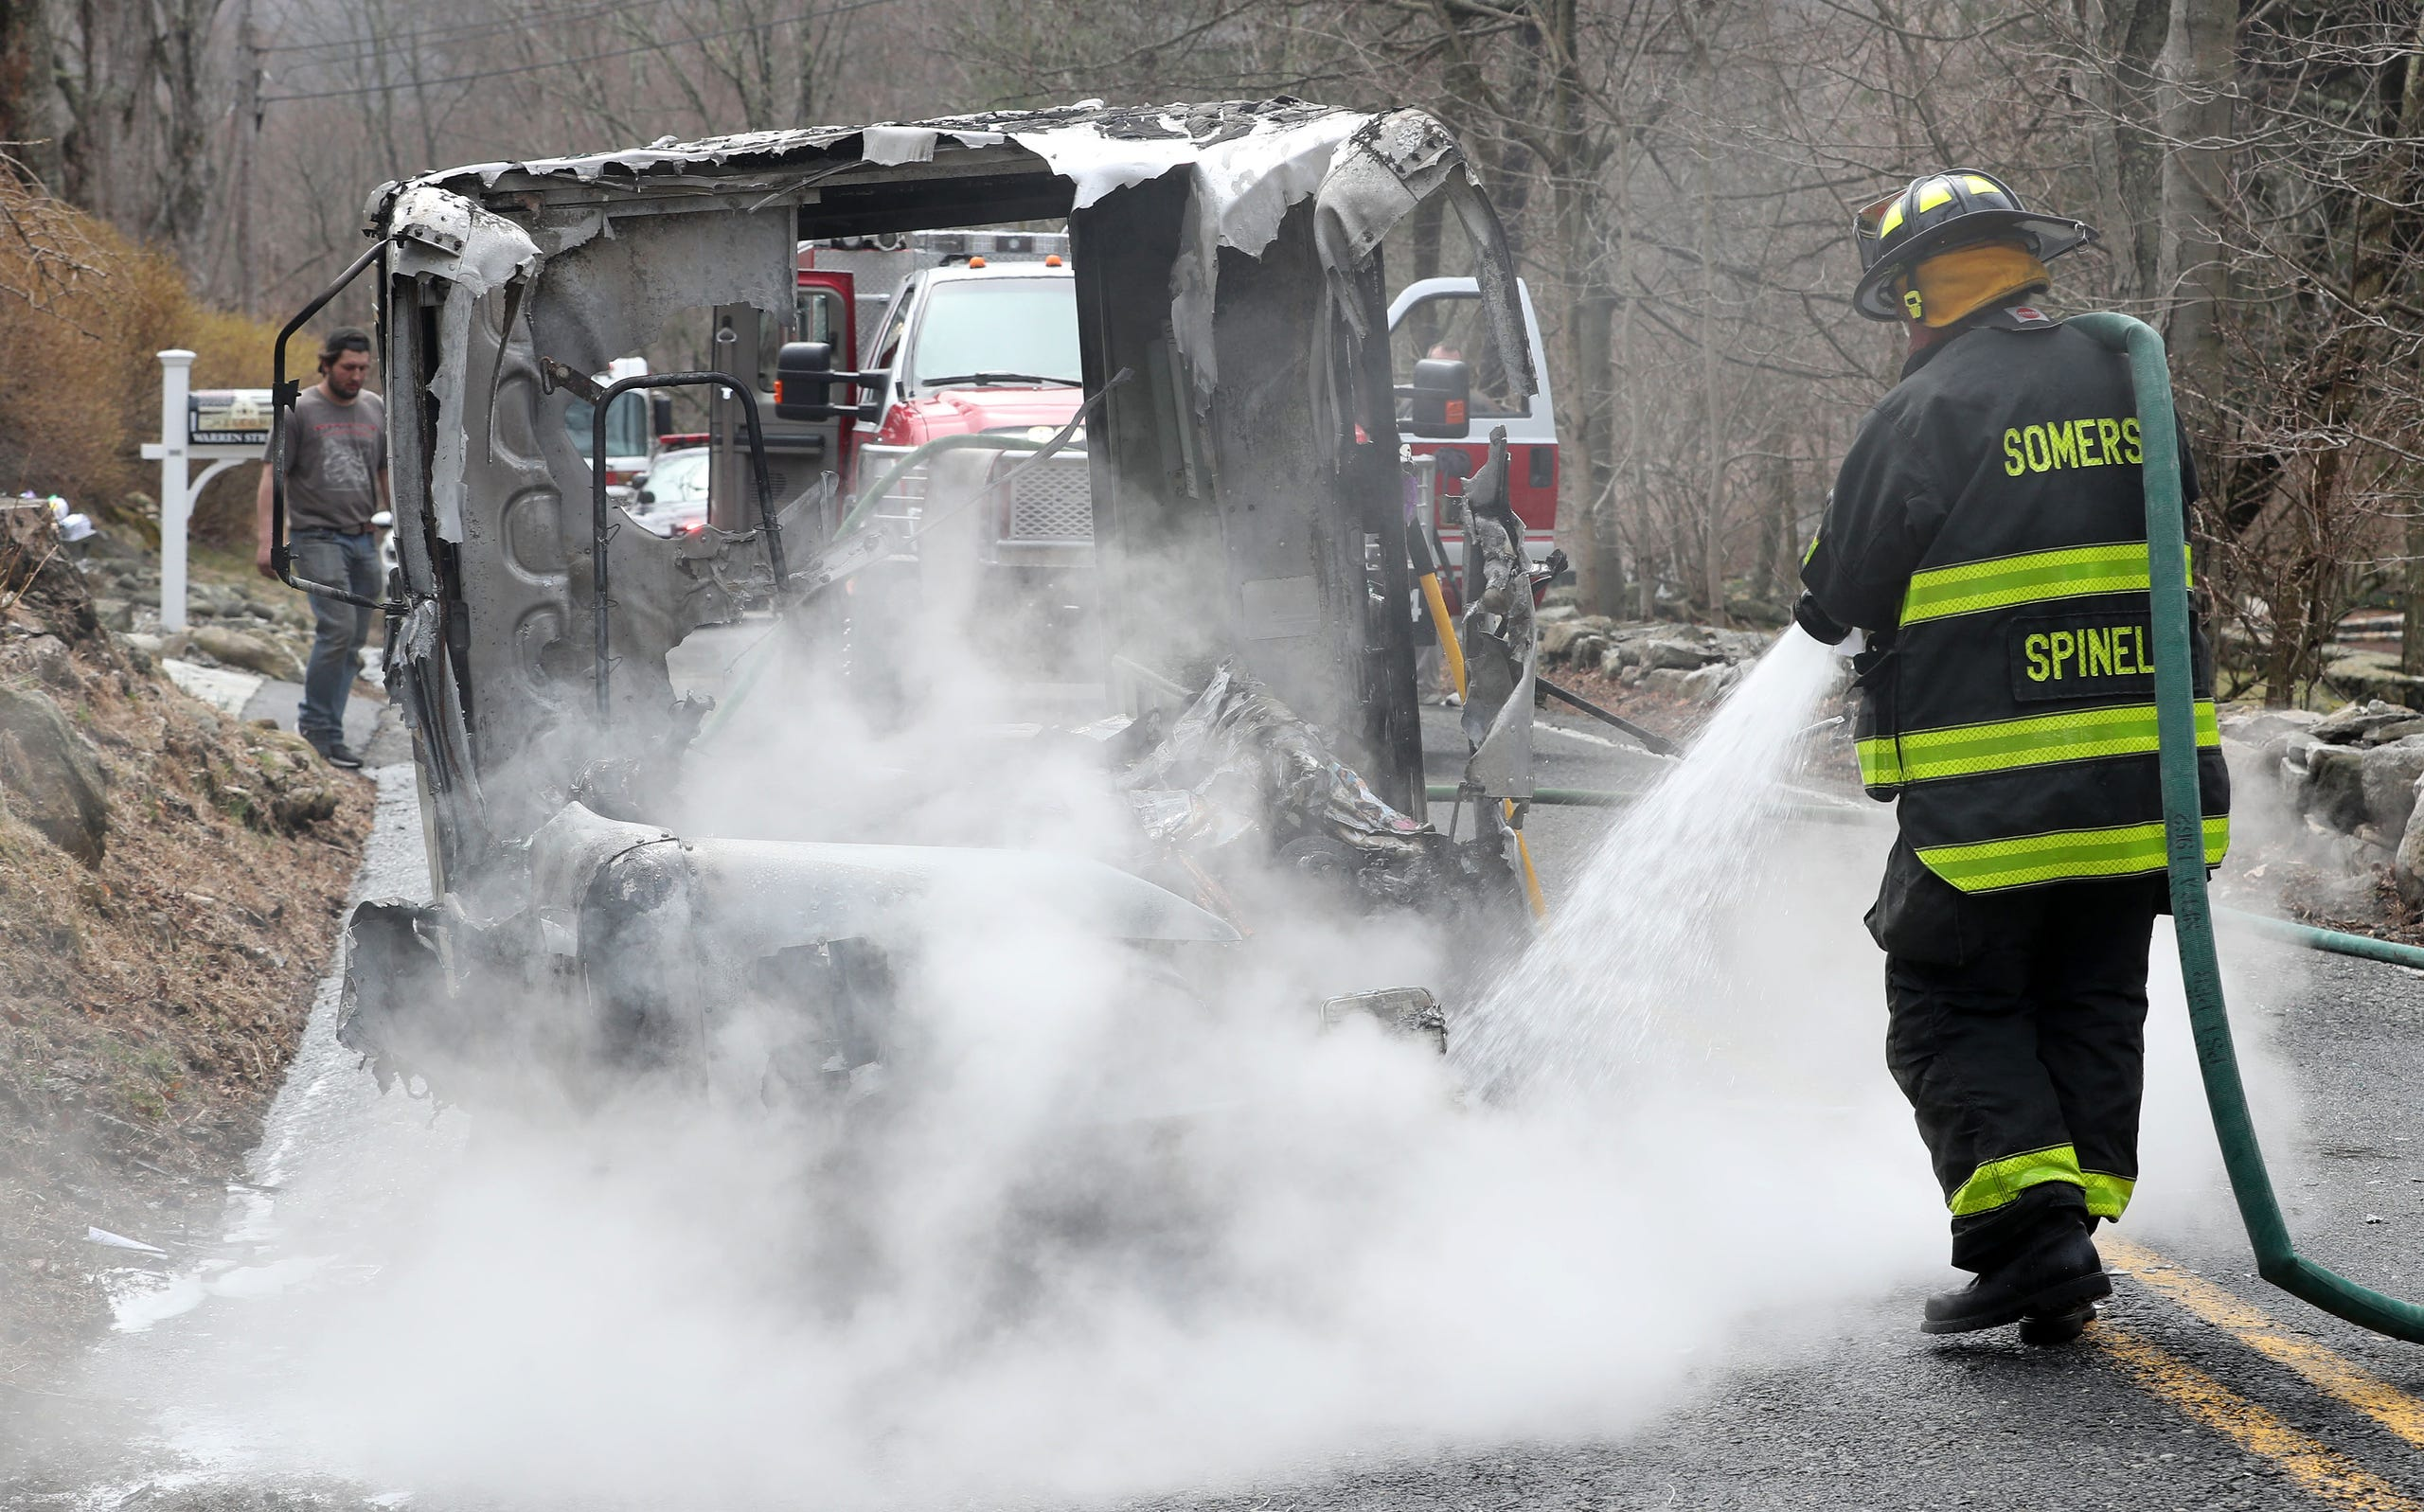 Somers Mail Truck Fire